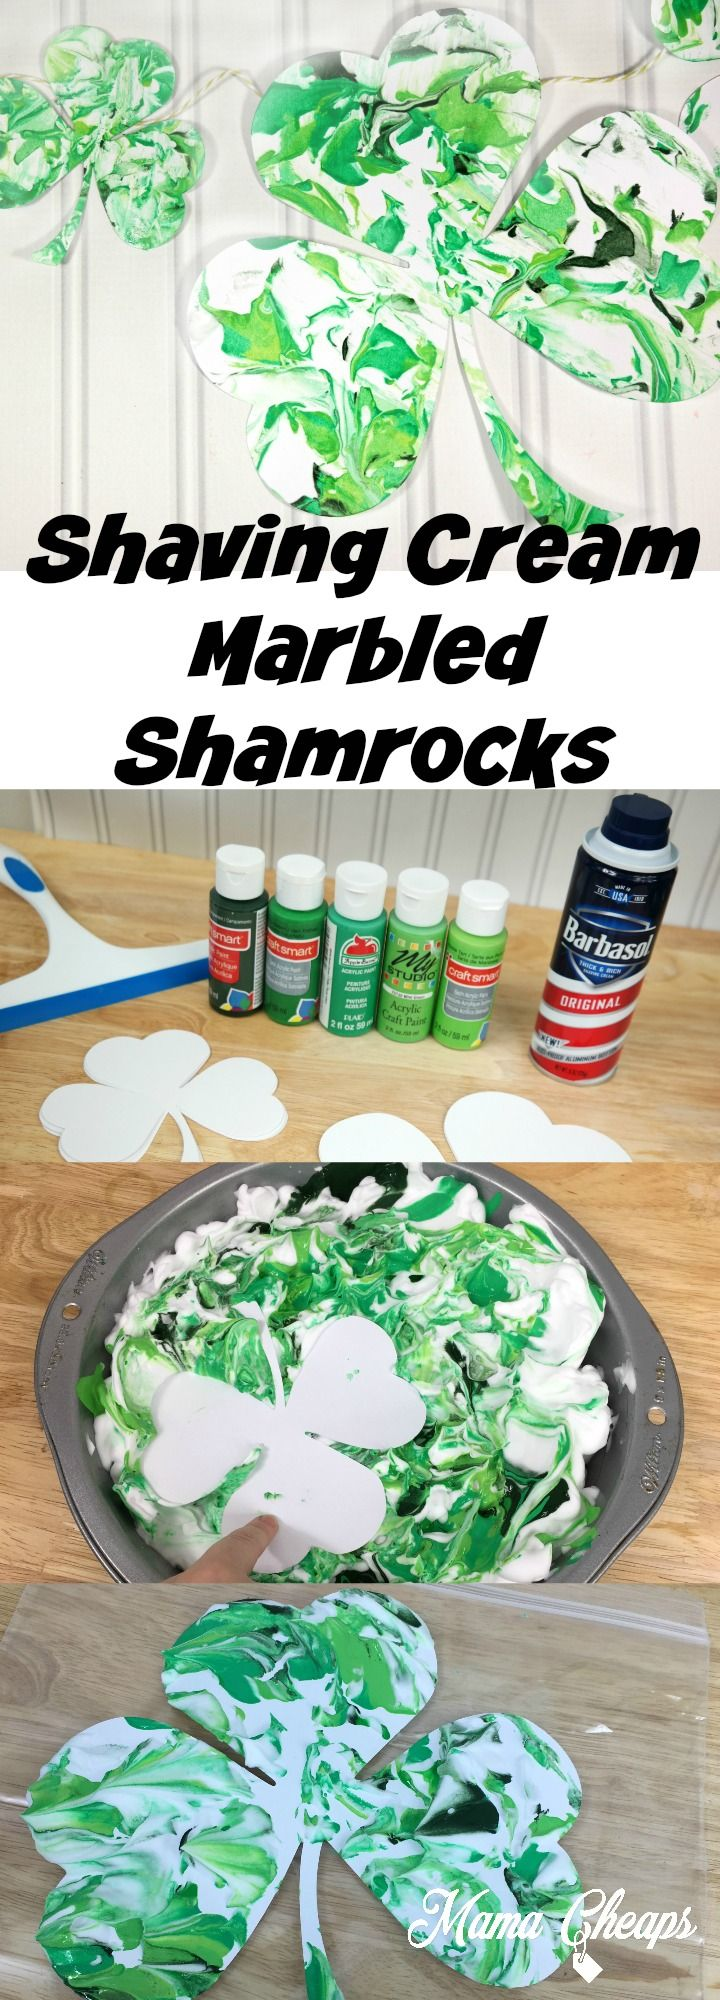 Shaving Cream Marbled Shamrock Craft for Kids!  Easy, fun and the shamrocks turn out so pretty!